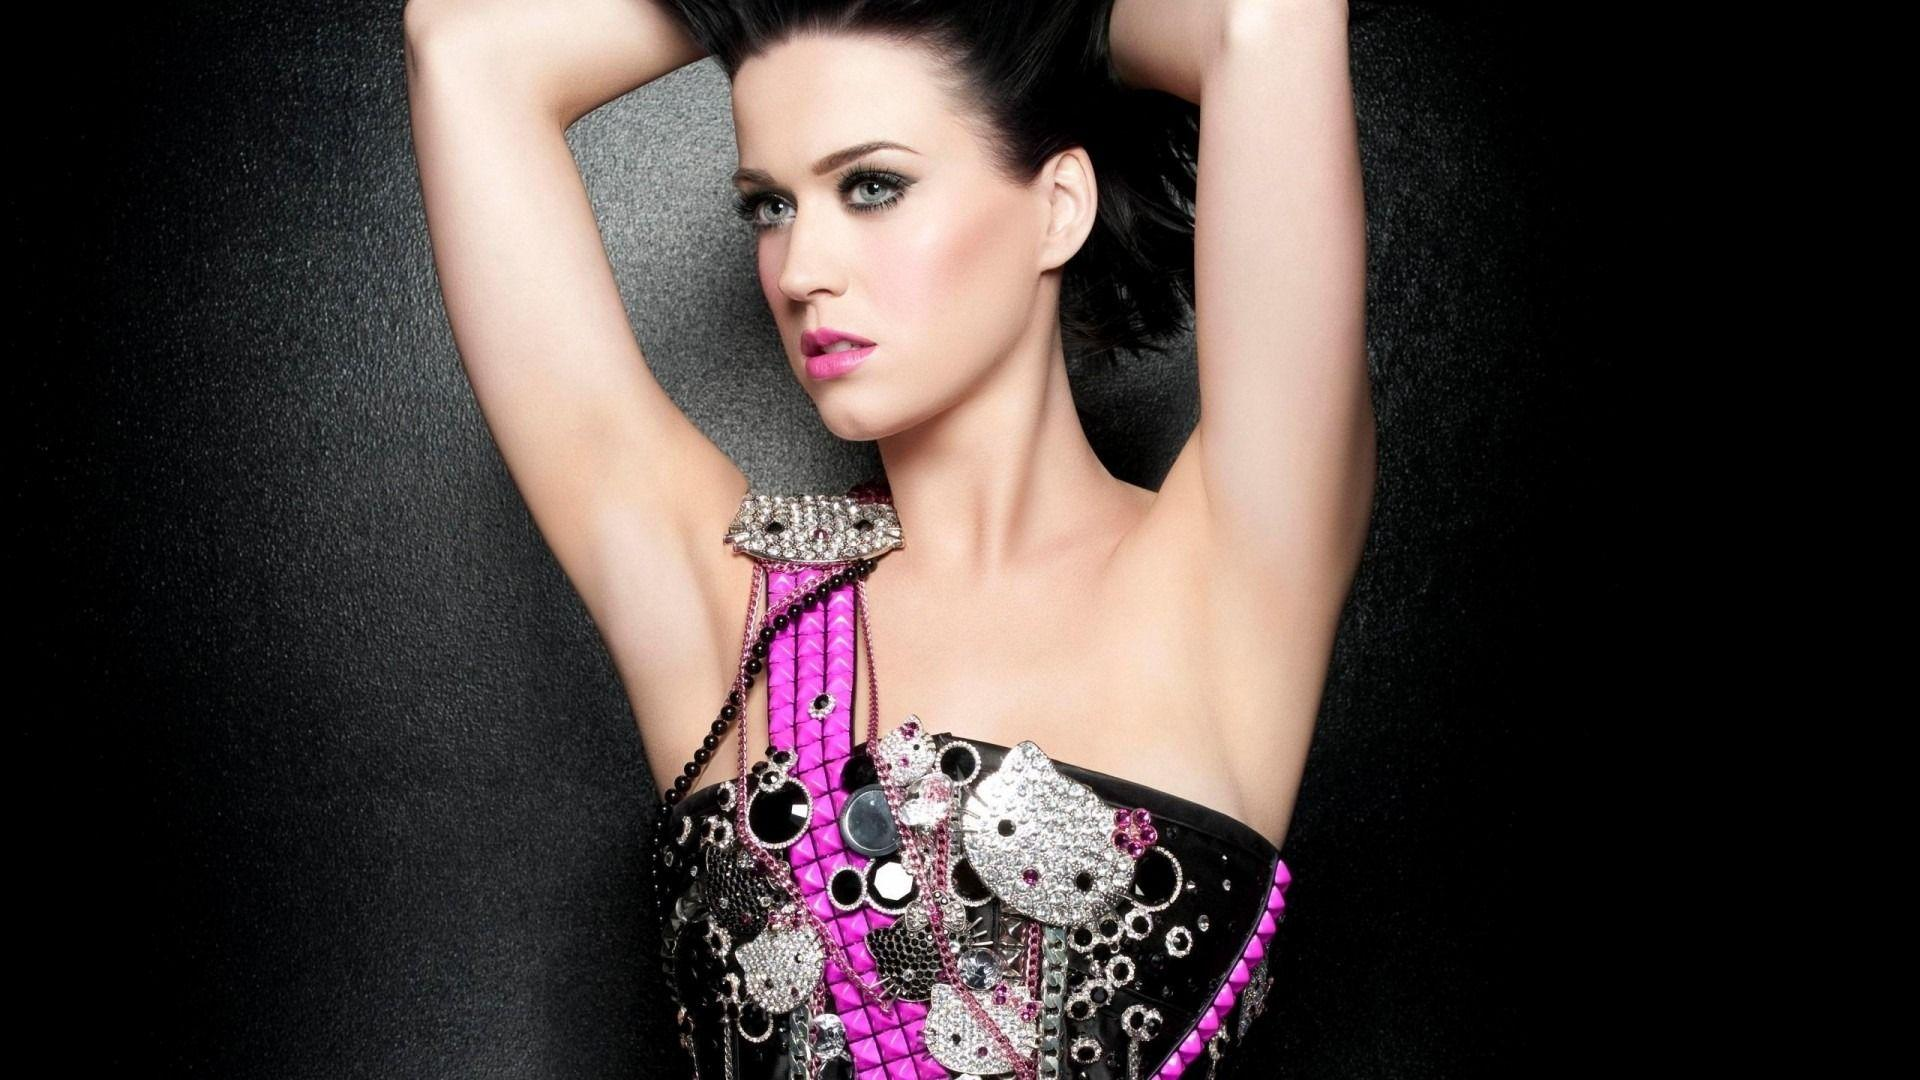 katy perry wallpaper 1080p - photo #2